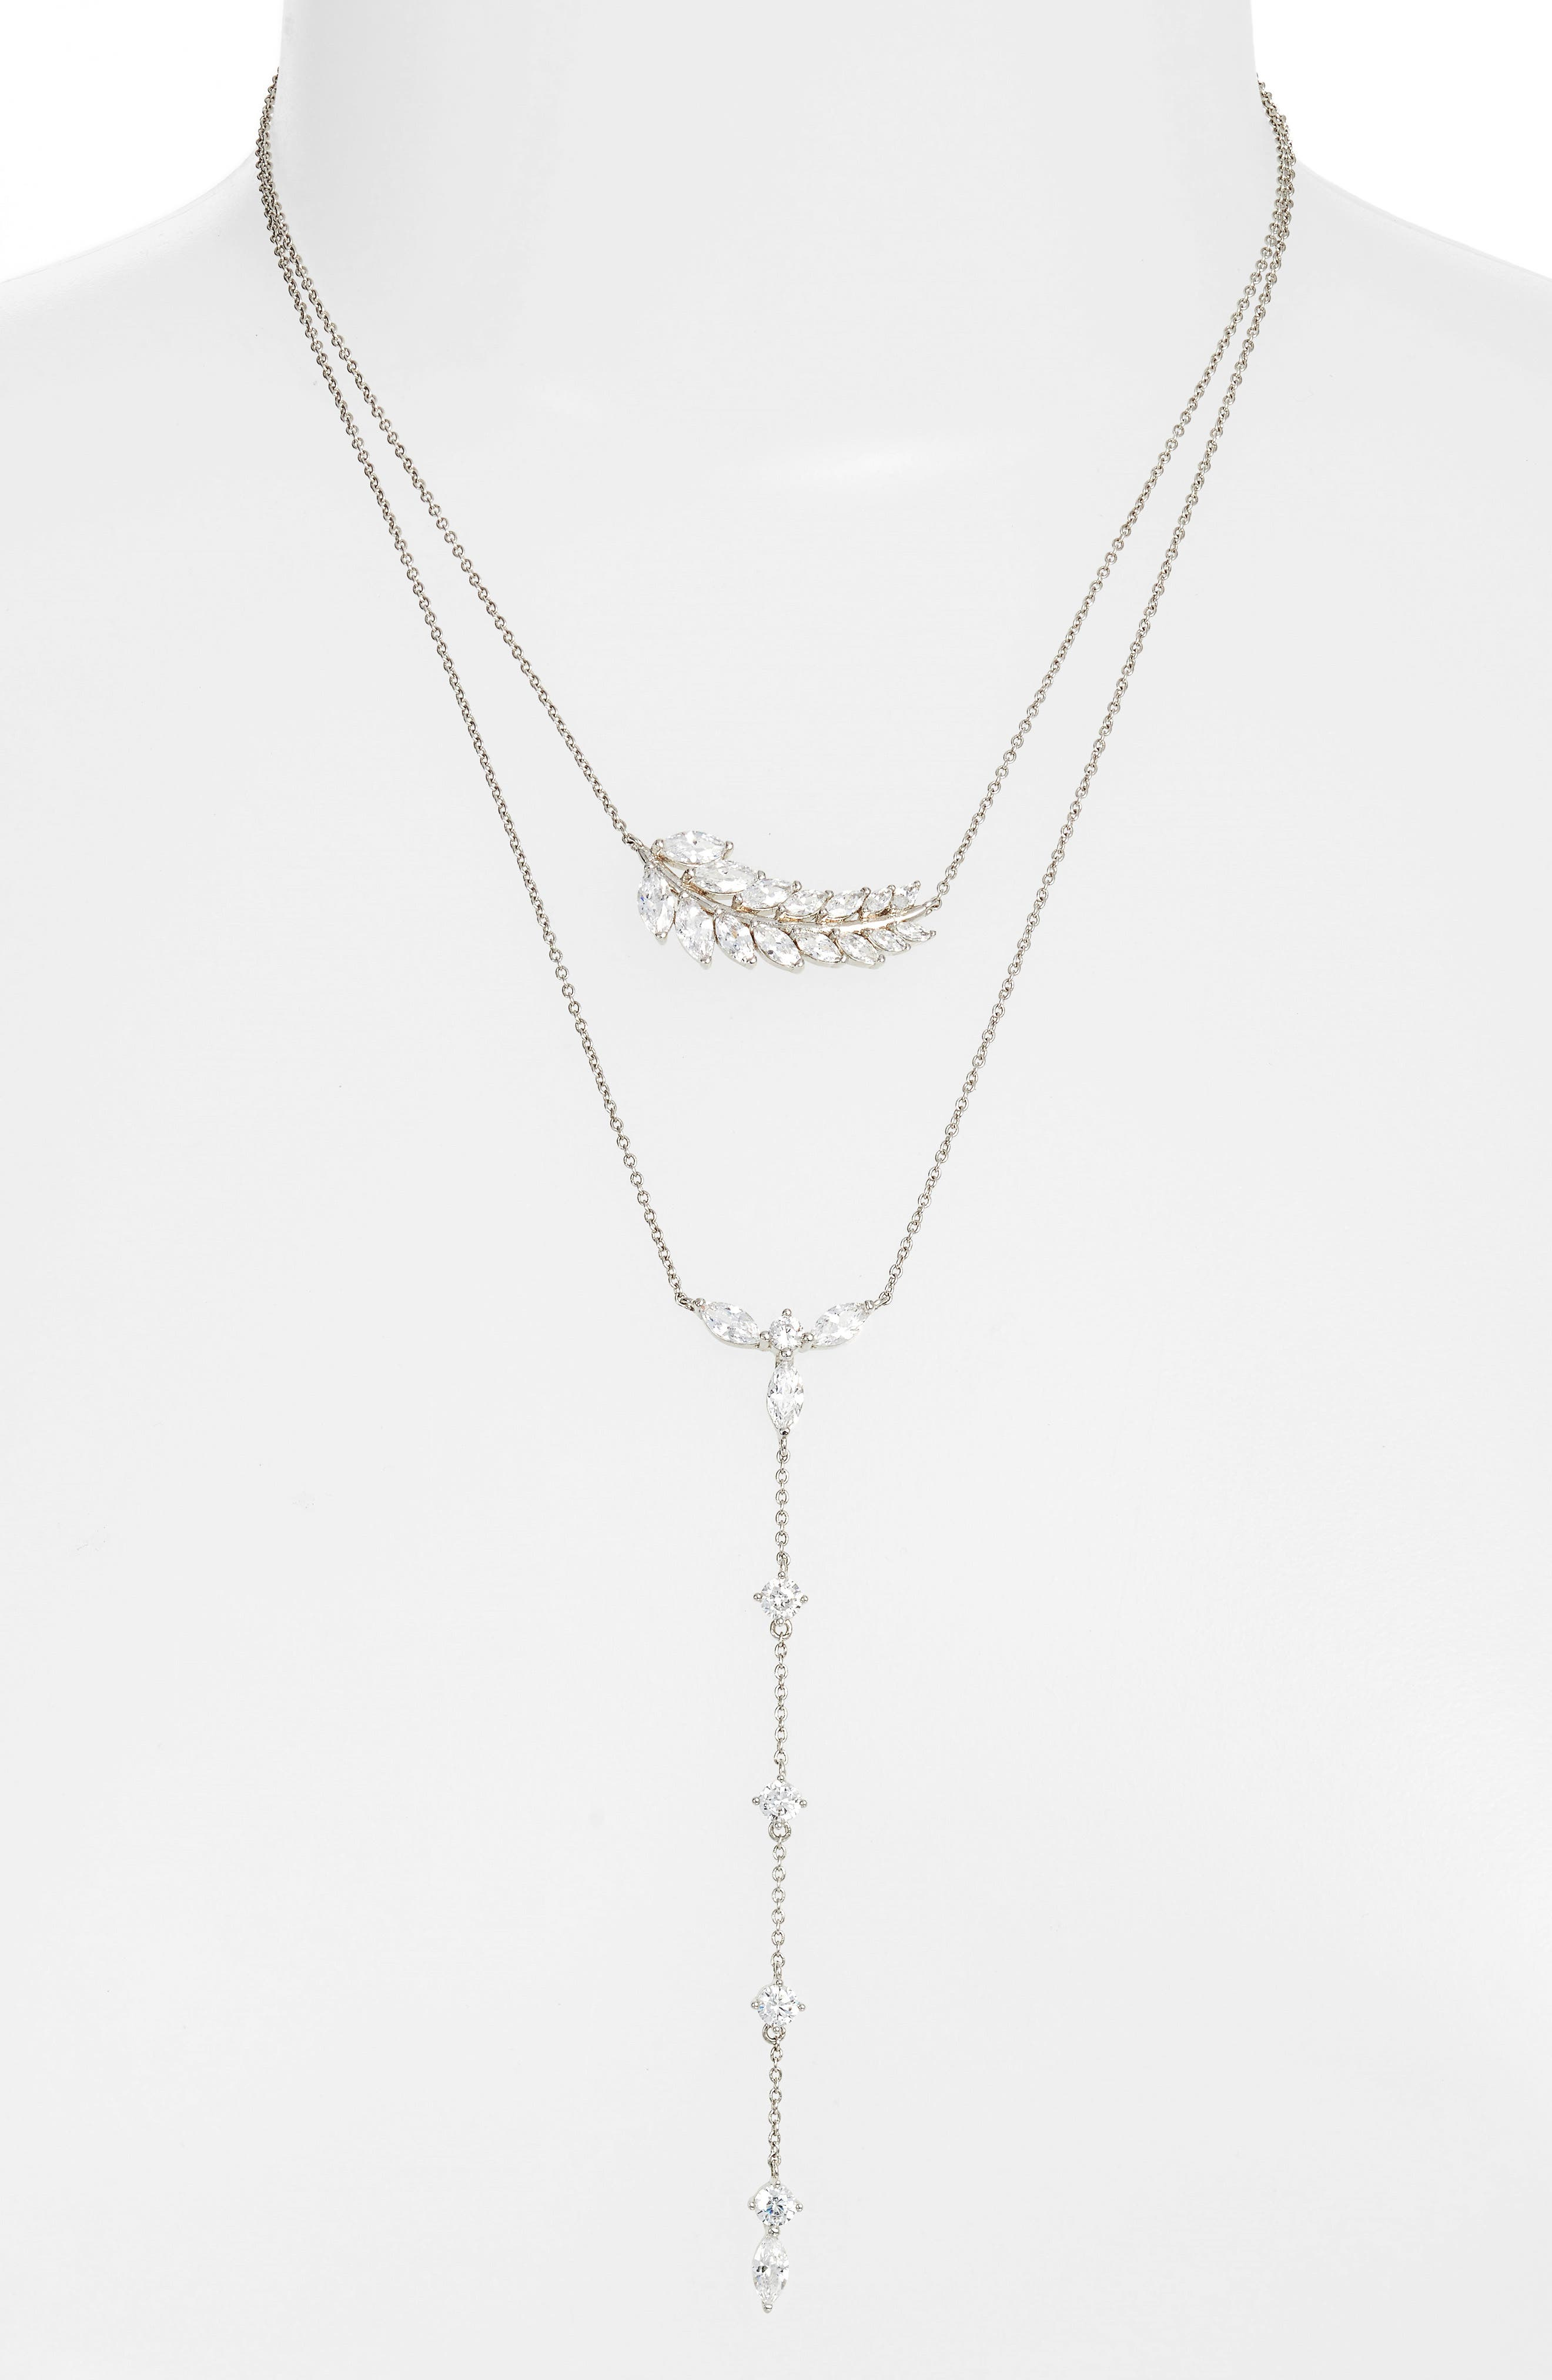 Fern Layered Lariat Necklace,                             Main thumbnail 1, color,                             Silver/ White Cz